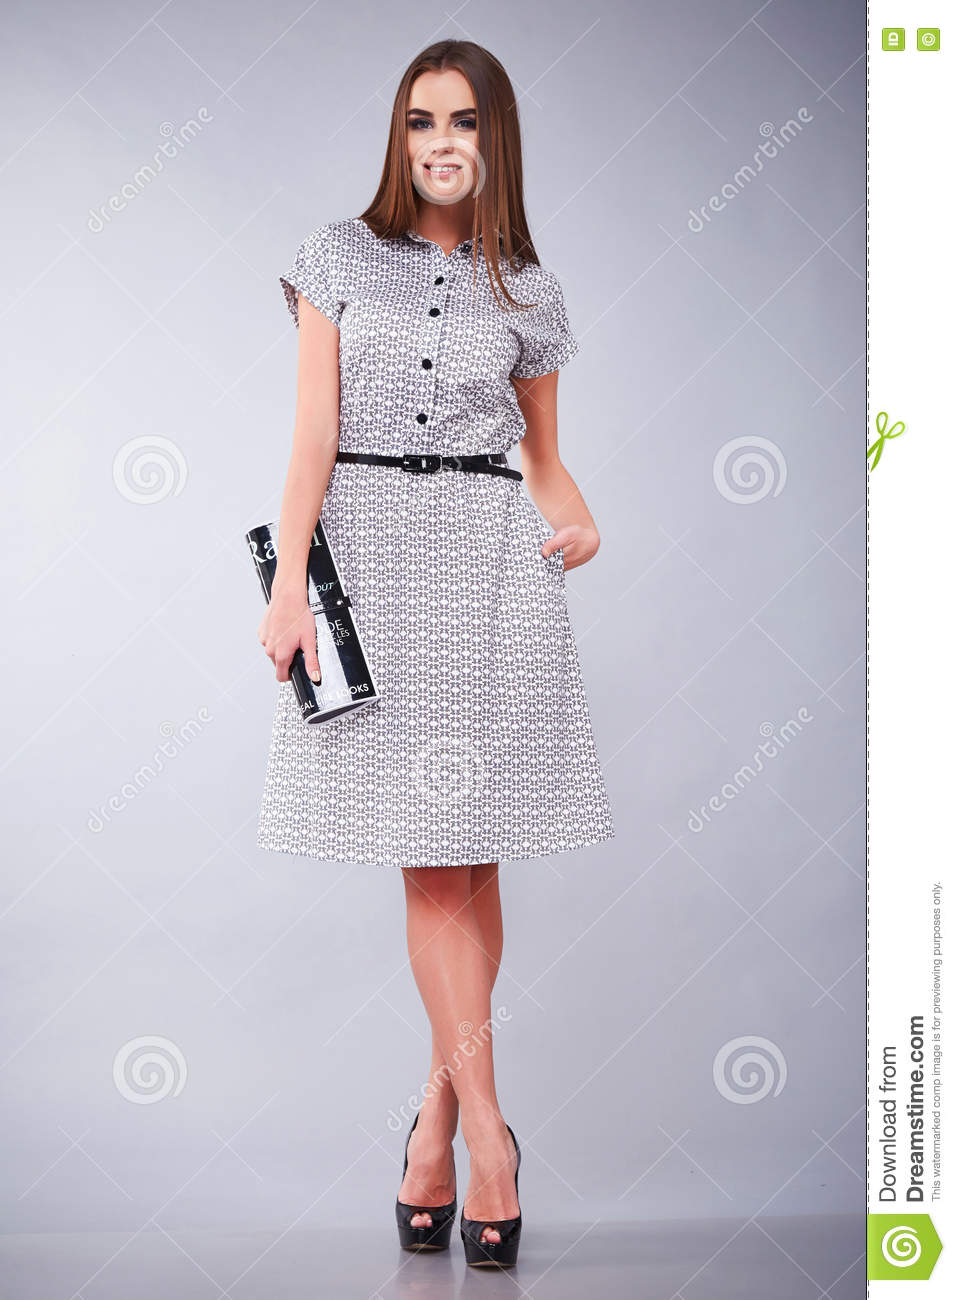 Clothes Casual And Office Business Woman Style Dress Stock